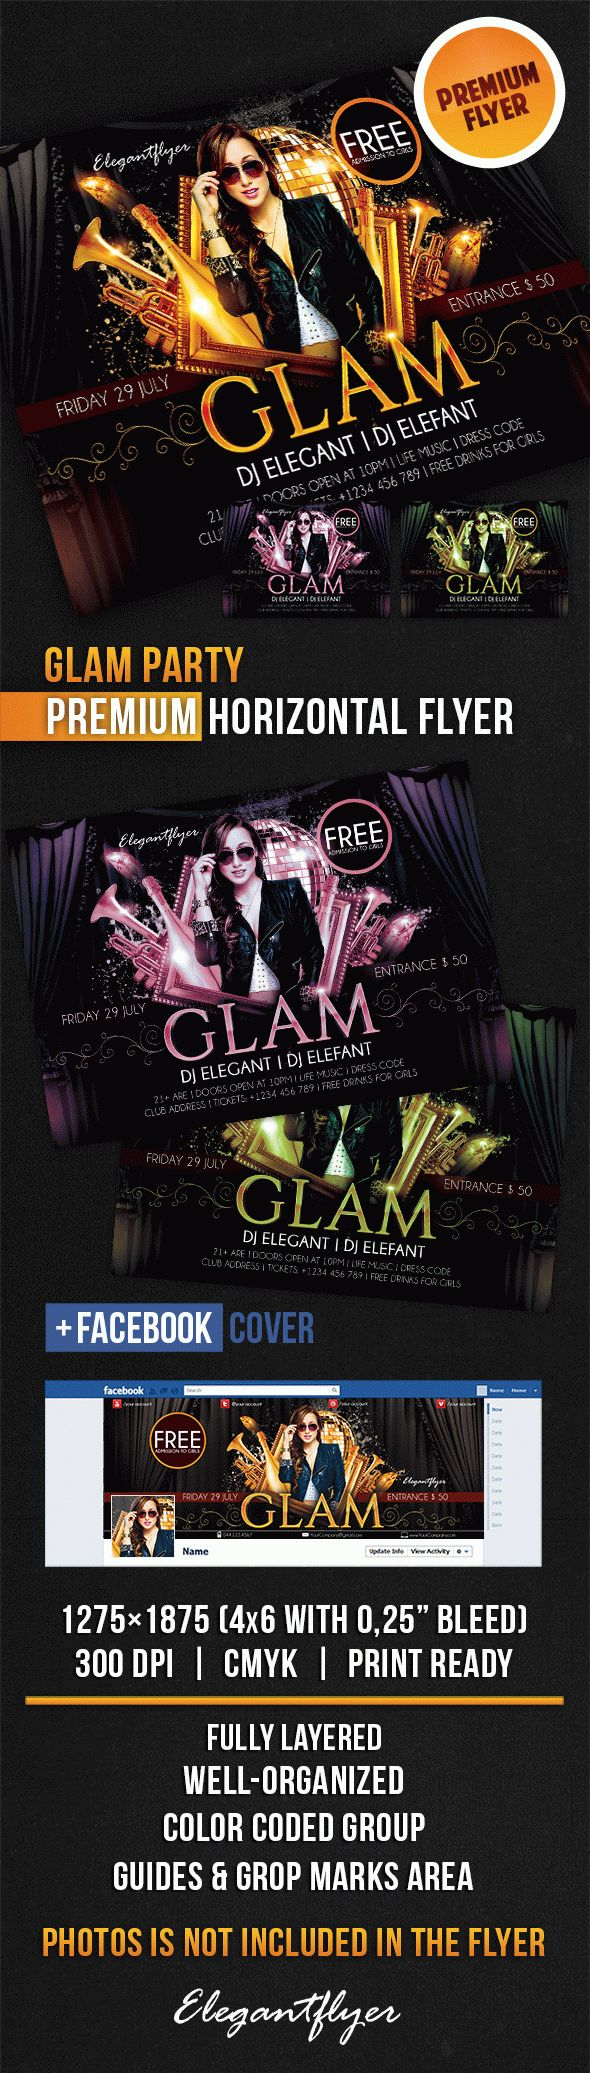 Glam Party - Horizontal Flyer PSD Template + Facebook ...